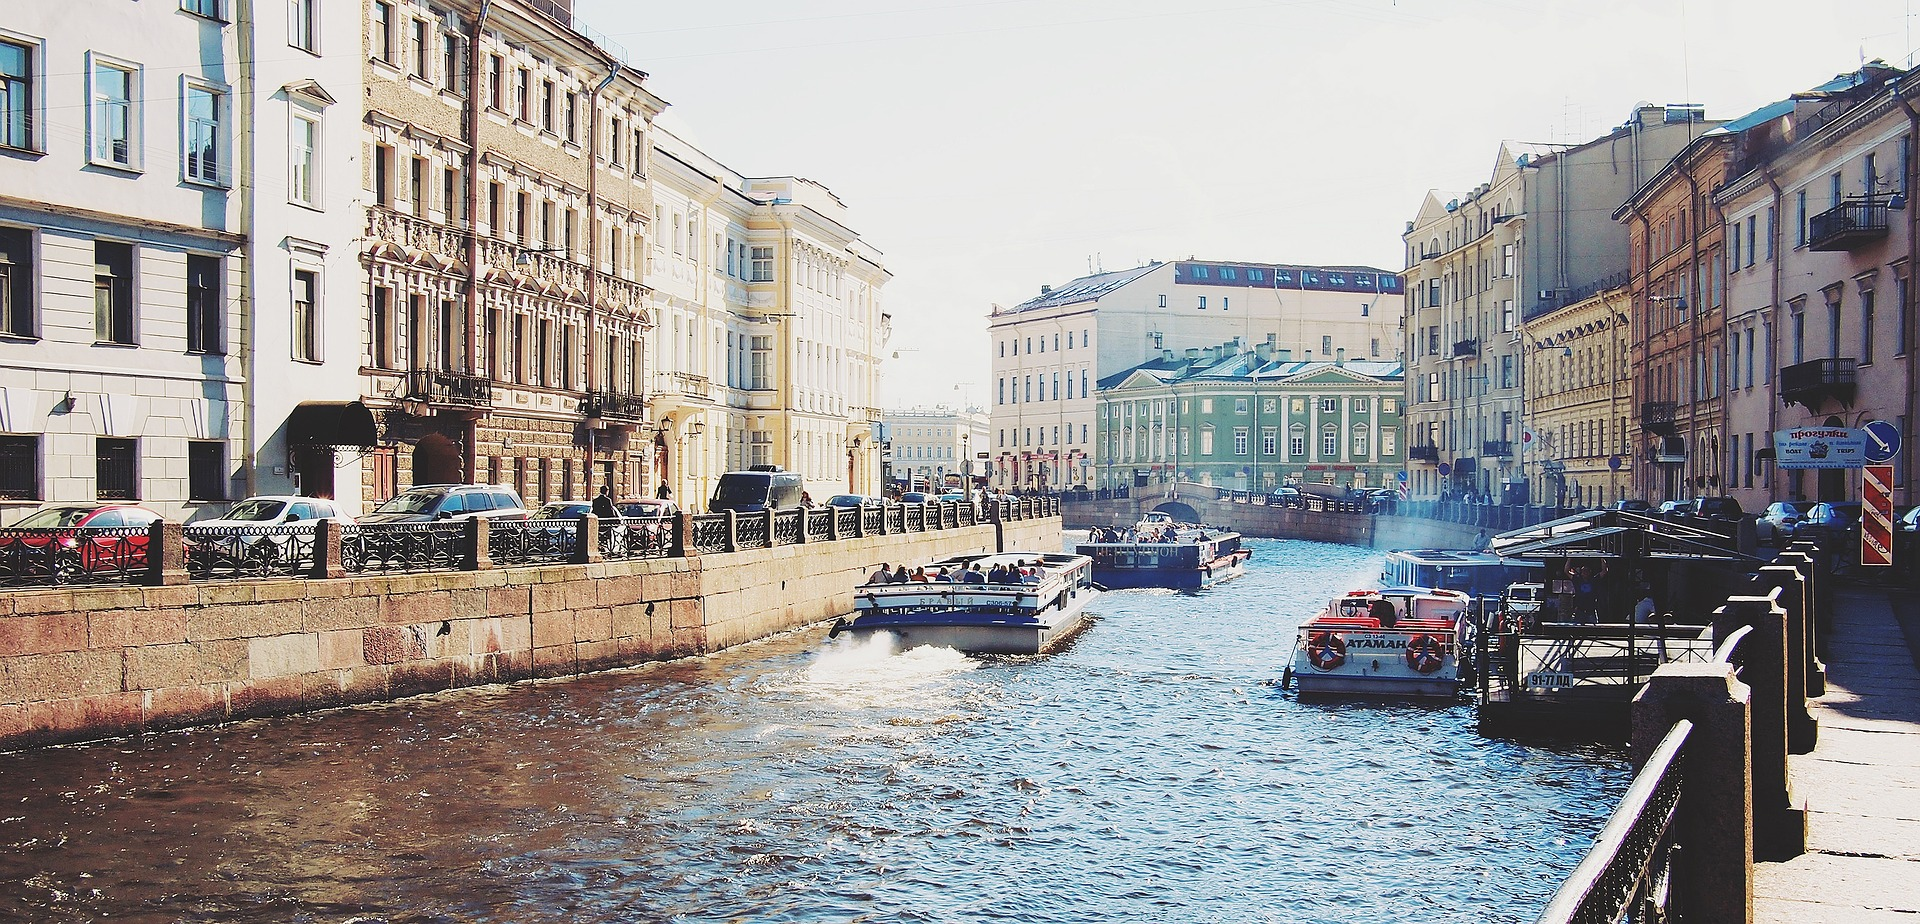 St Petersburg wins European city destination of the year at World Travel Awards